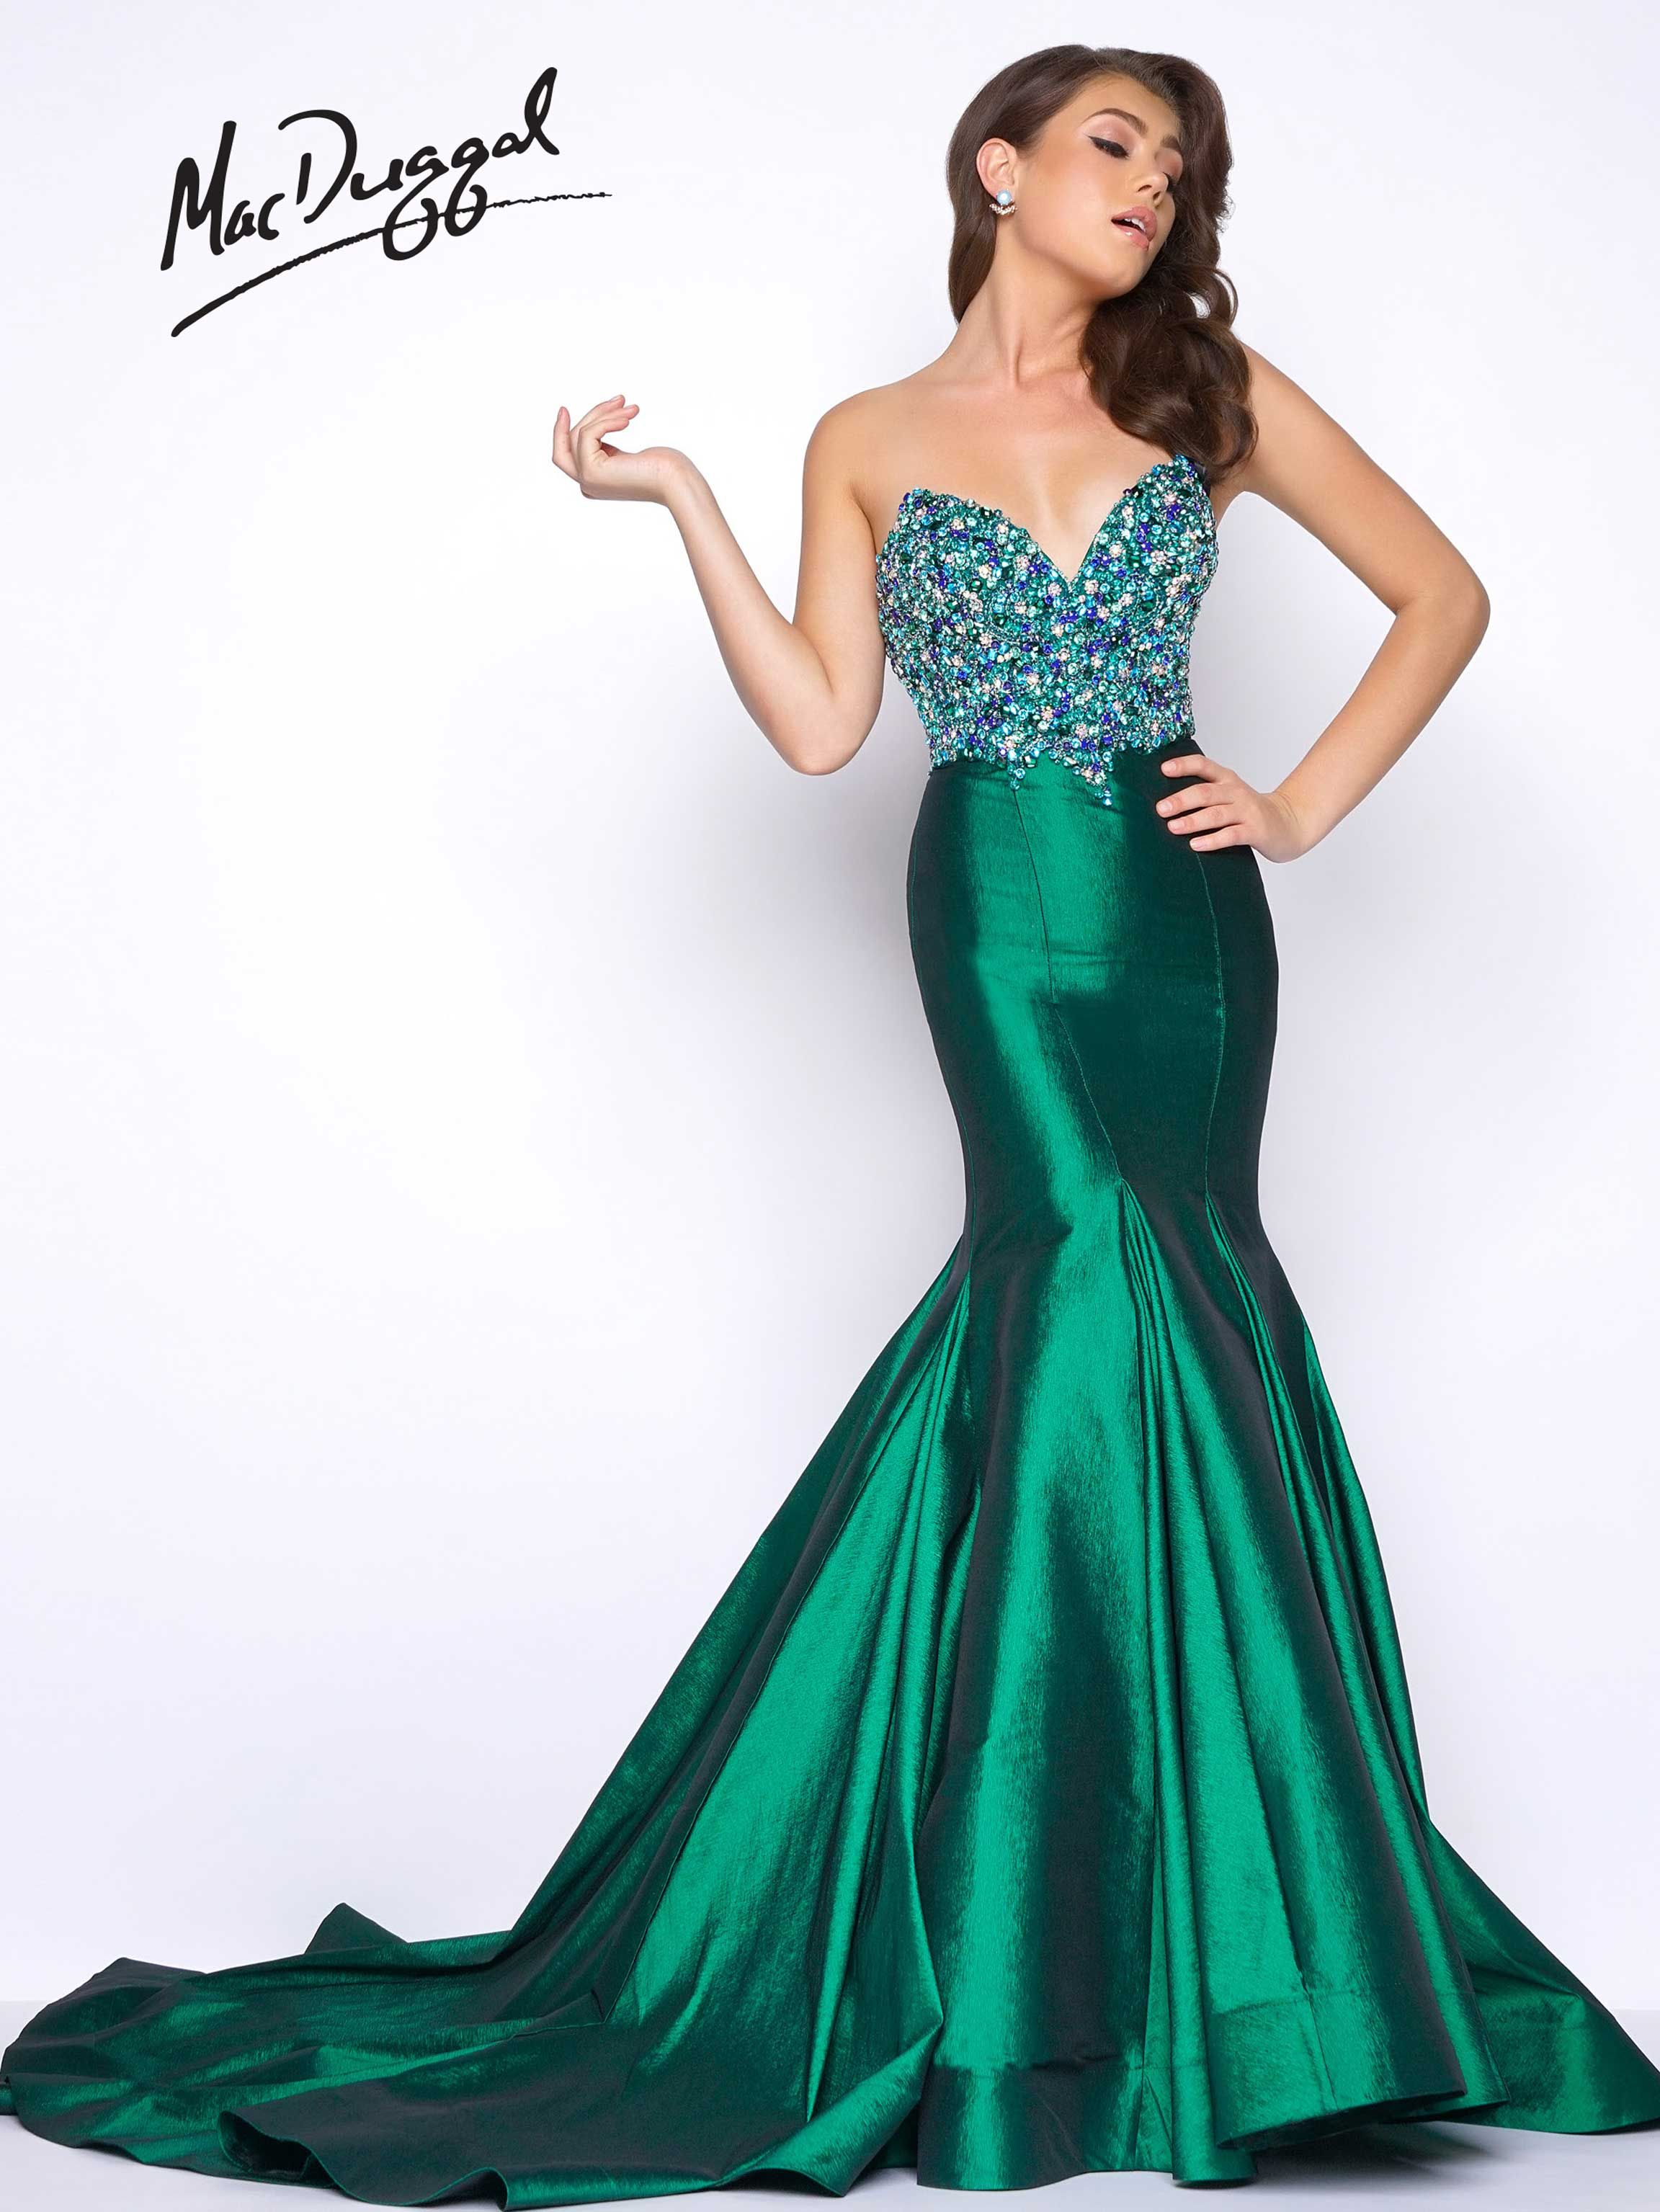 Strapless sweetheart neckline satin beaded bodice prom dress with exaggerated sweep train